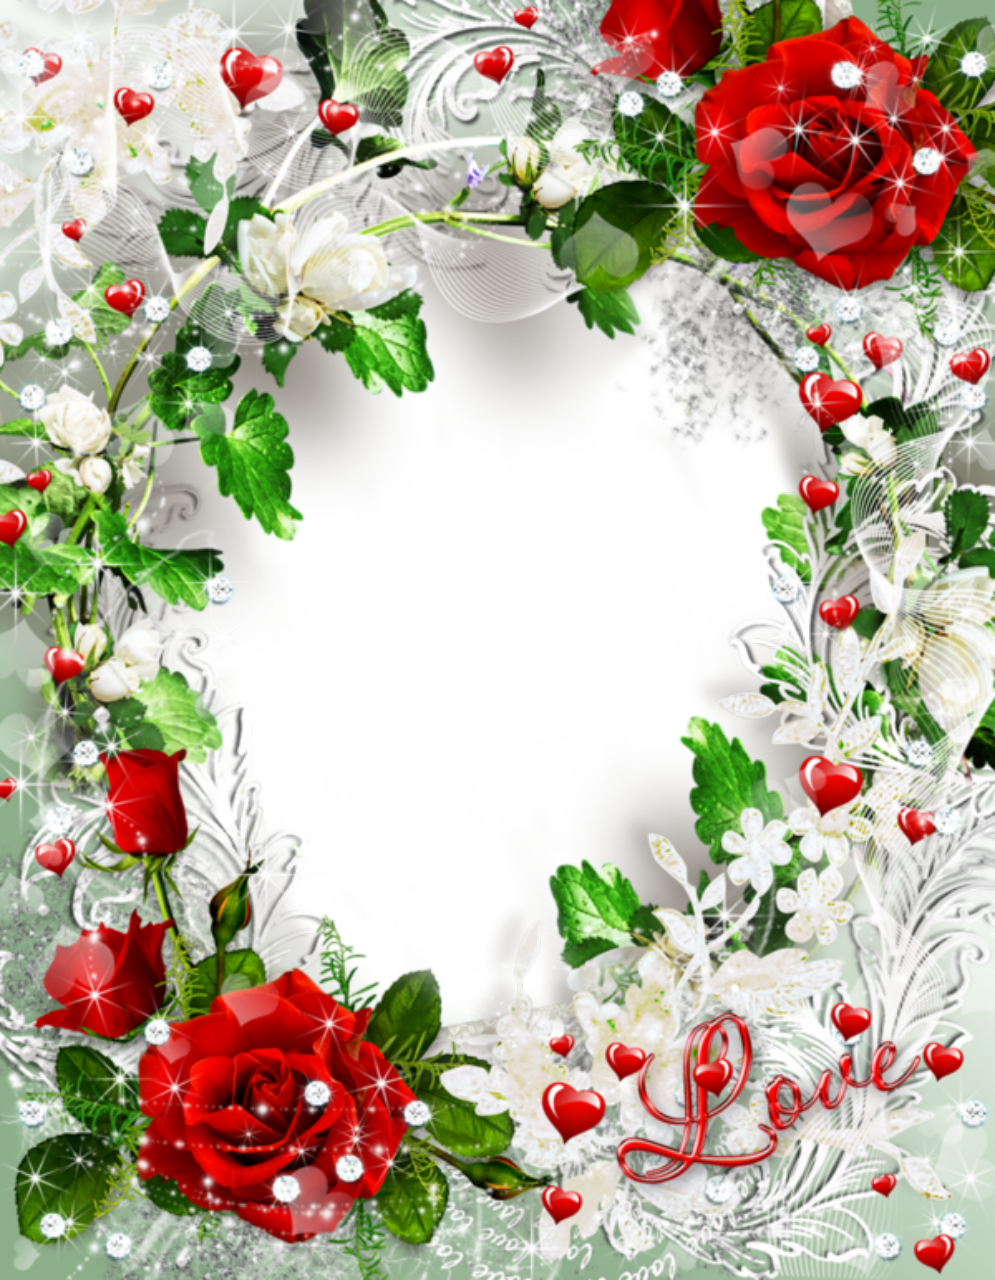 Floral Roses And Hearts Picture Frame Png 995 1280 Romantic Frame Rose Frame Flower Frame